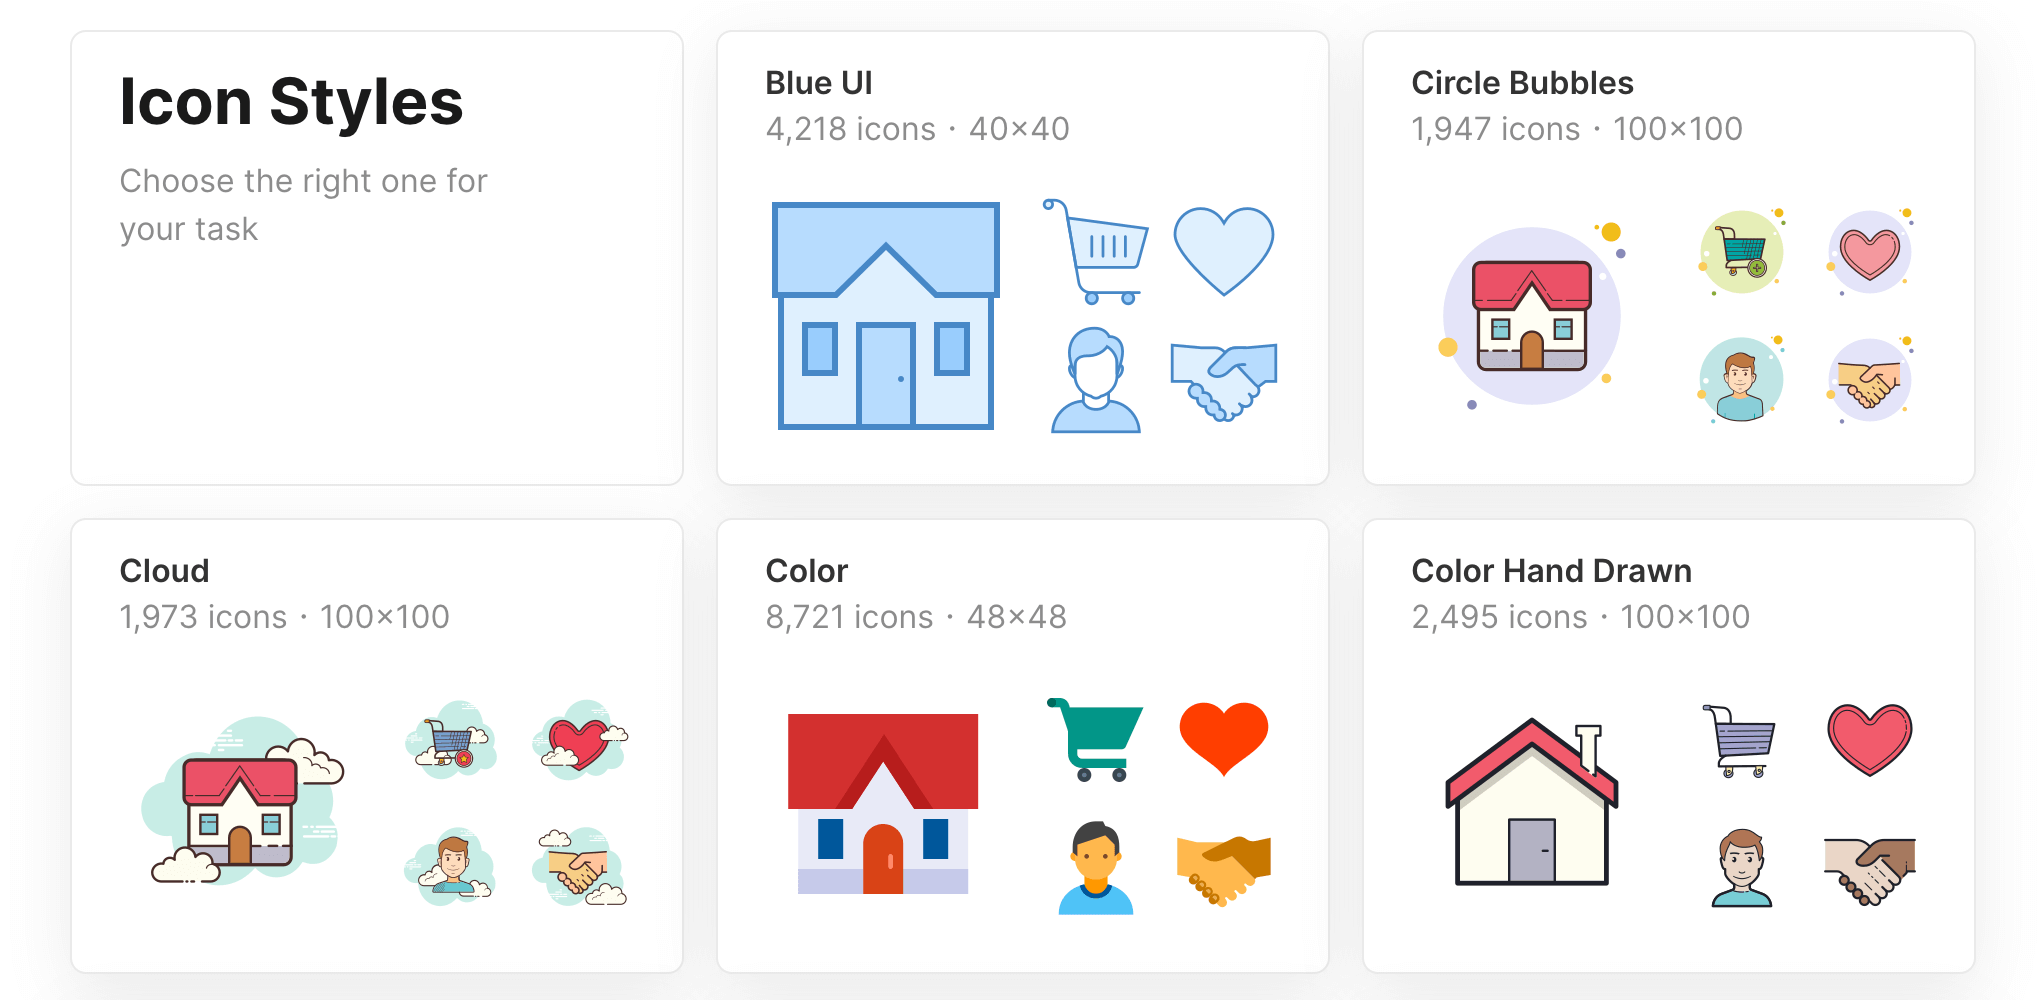 Free icon sets from Icons8.